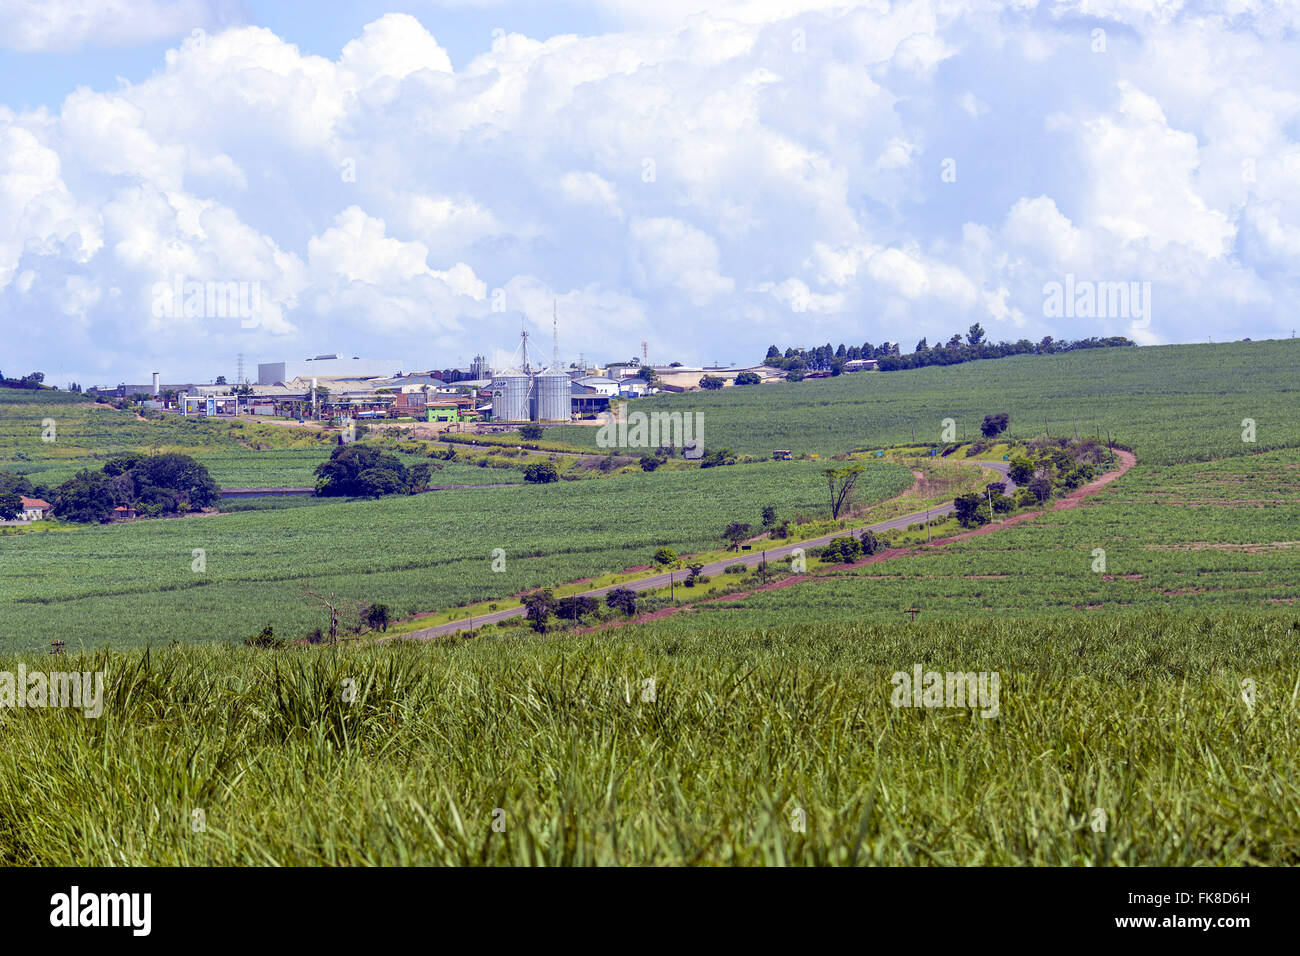 Sugarcane plantation with urban area to the bottom - Stock Image